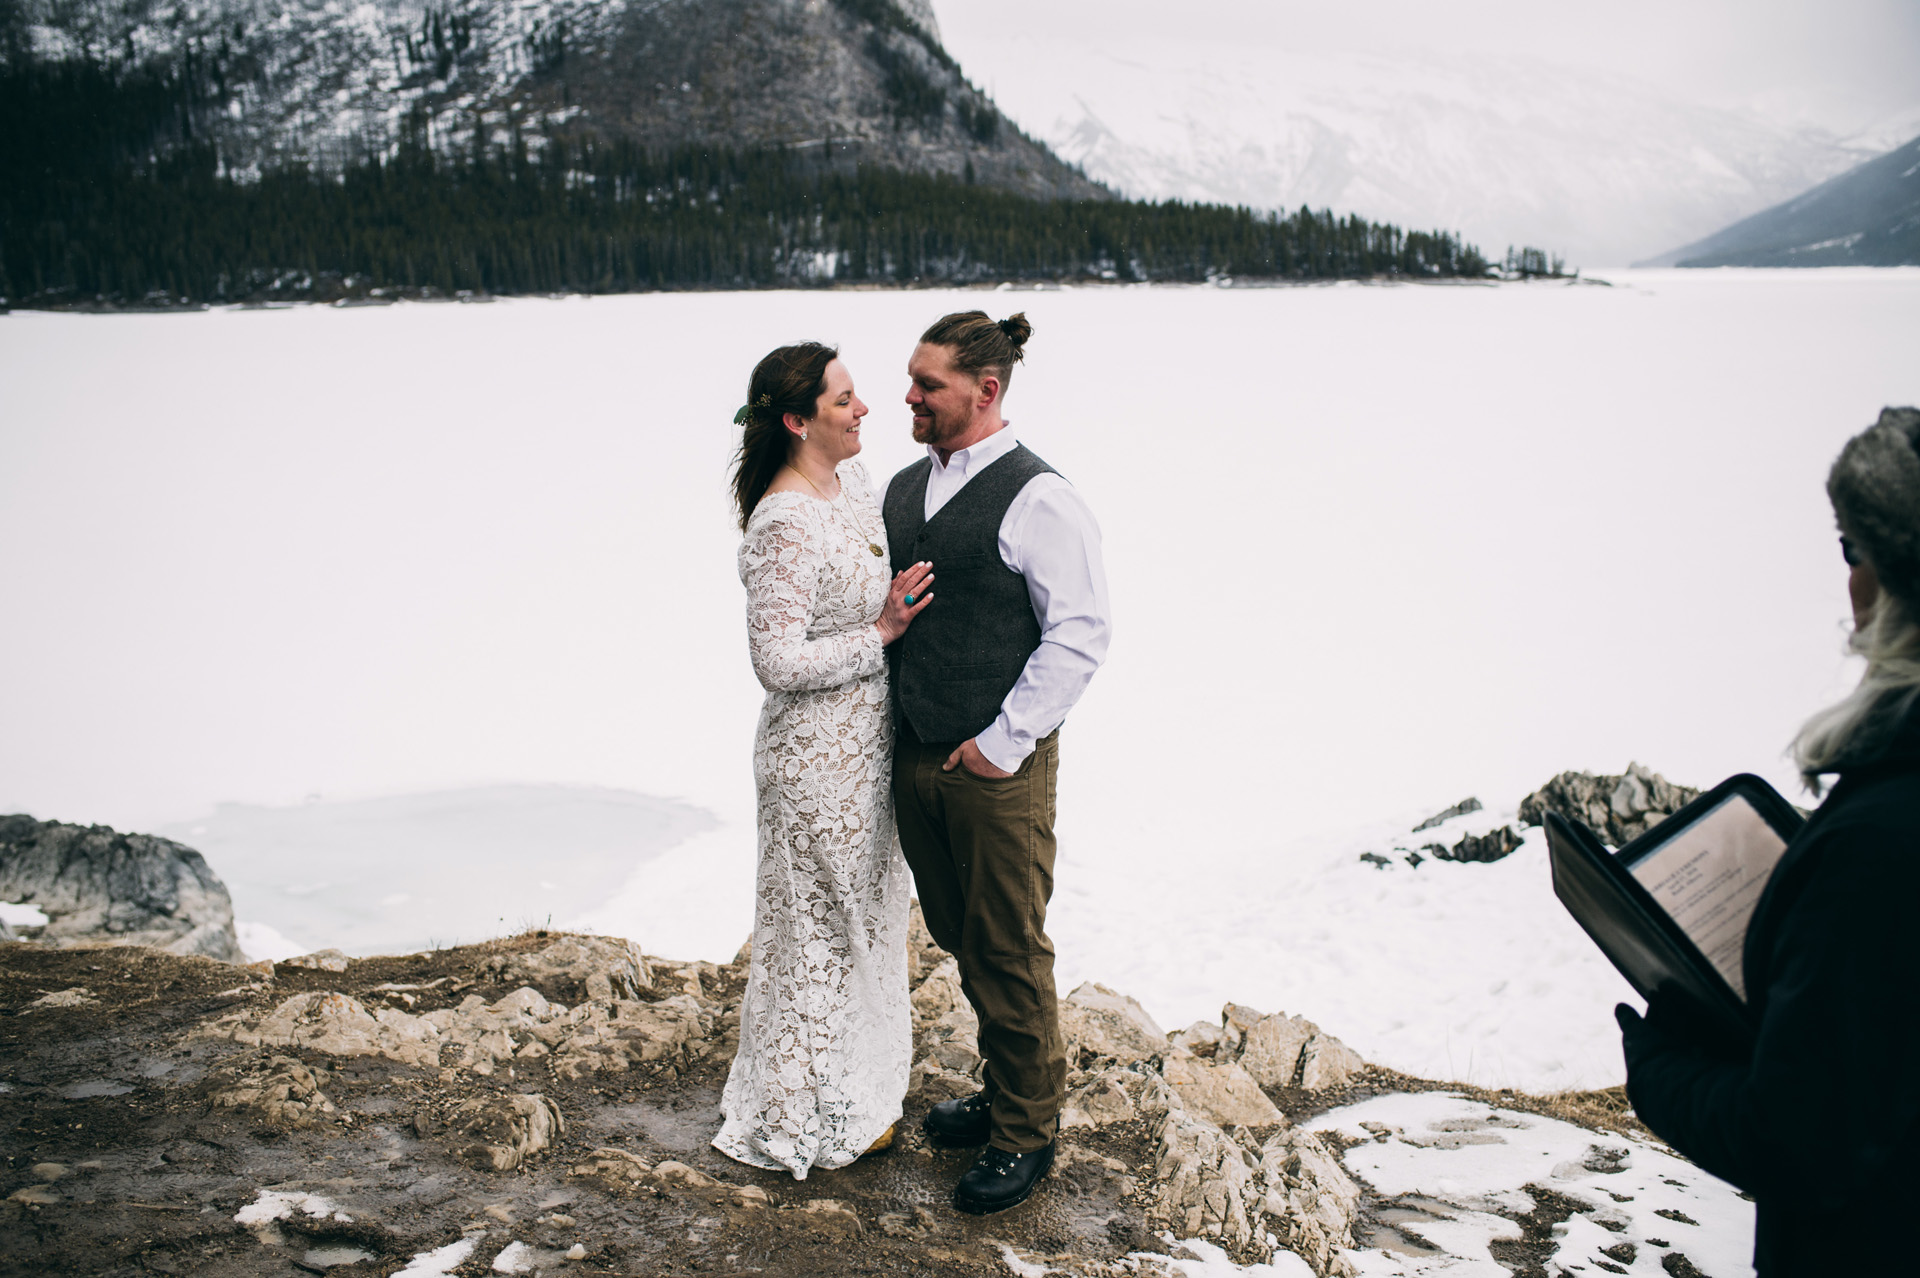 banff-wedding-photographer-31